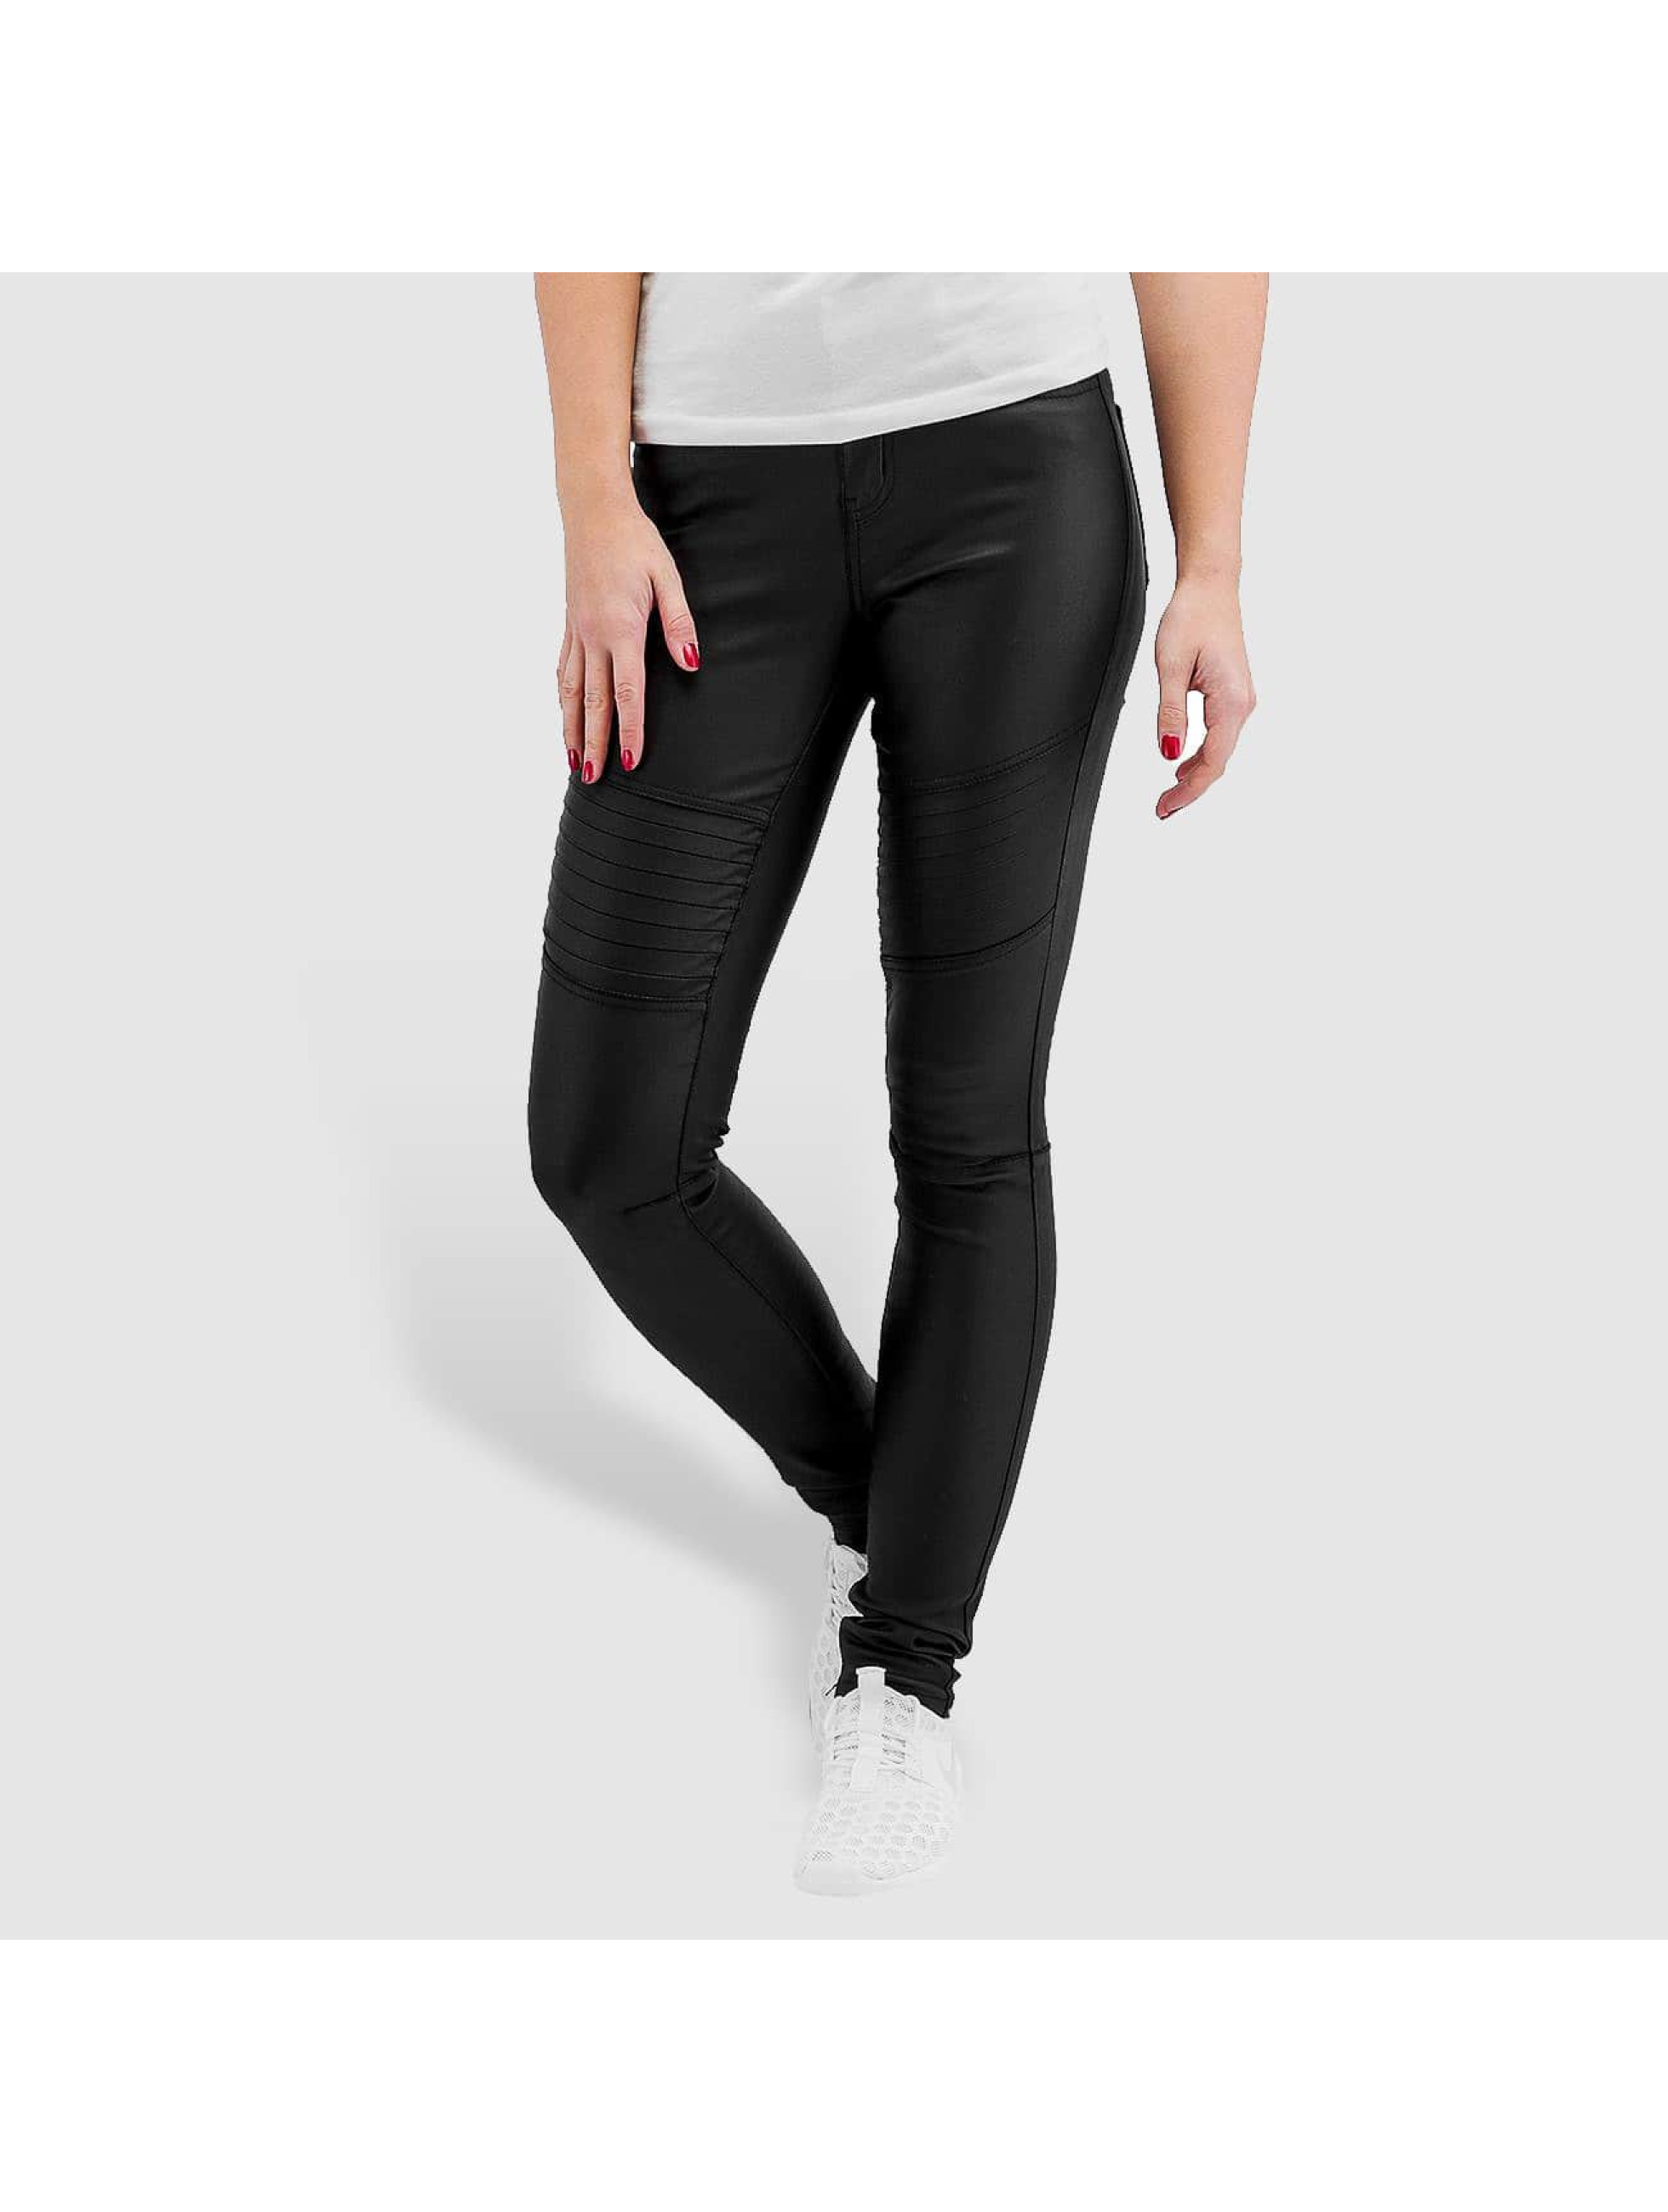 Legging pcJust New Coated in schwarz